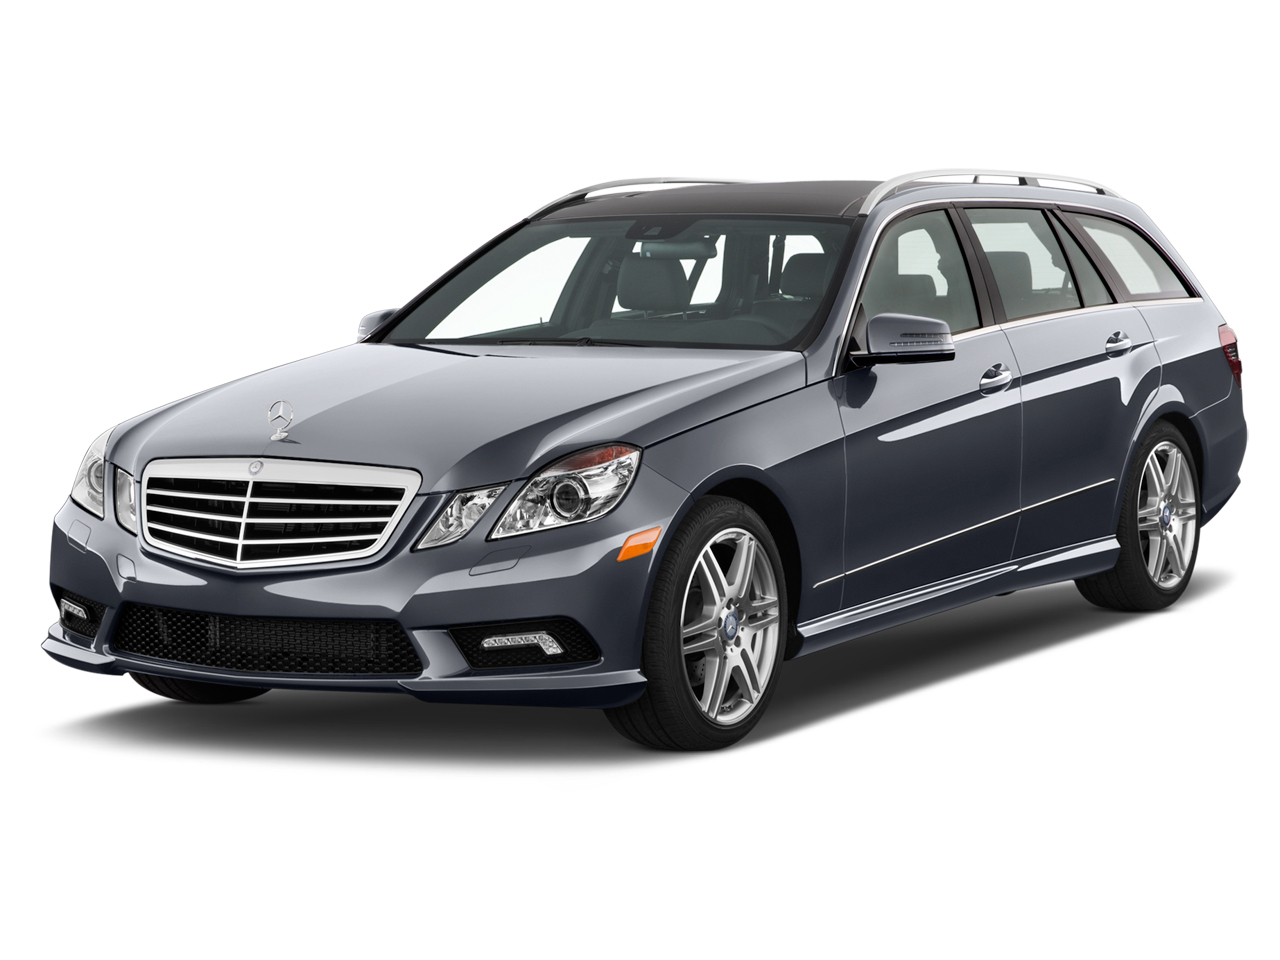 2012 mercedes benz e class features review the car for 2012 mercedes benz e350 review